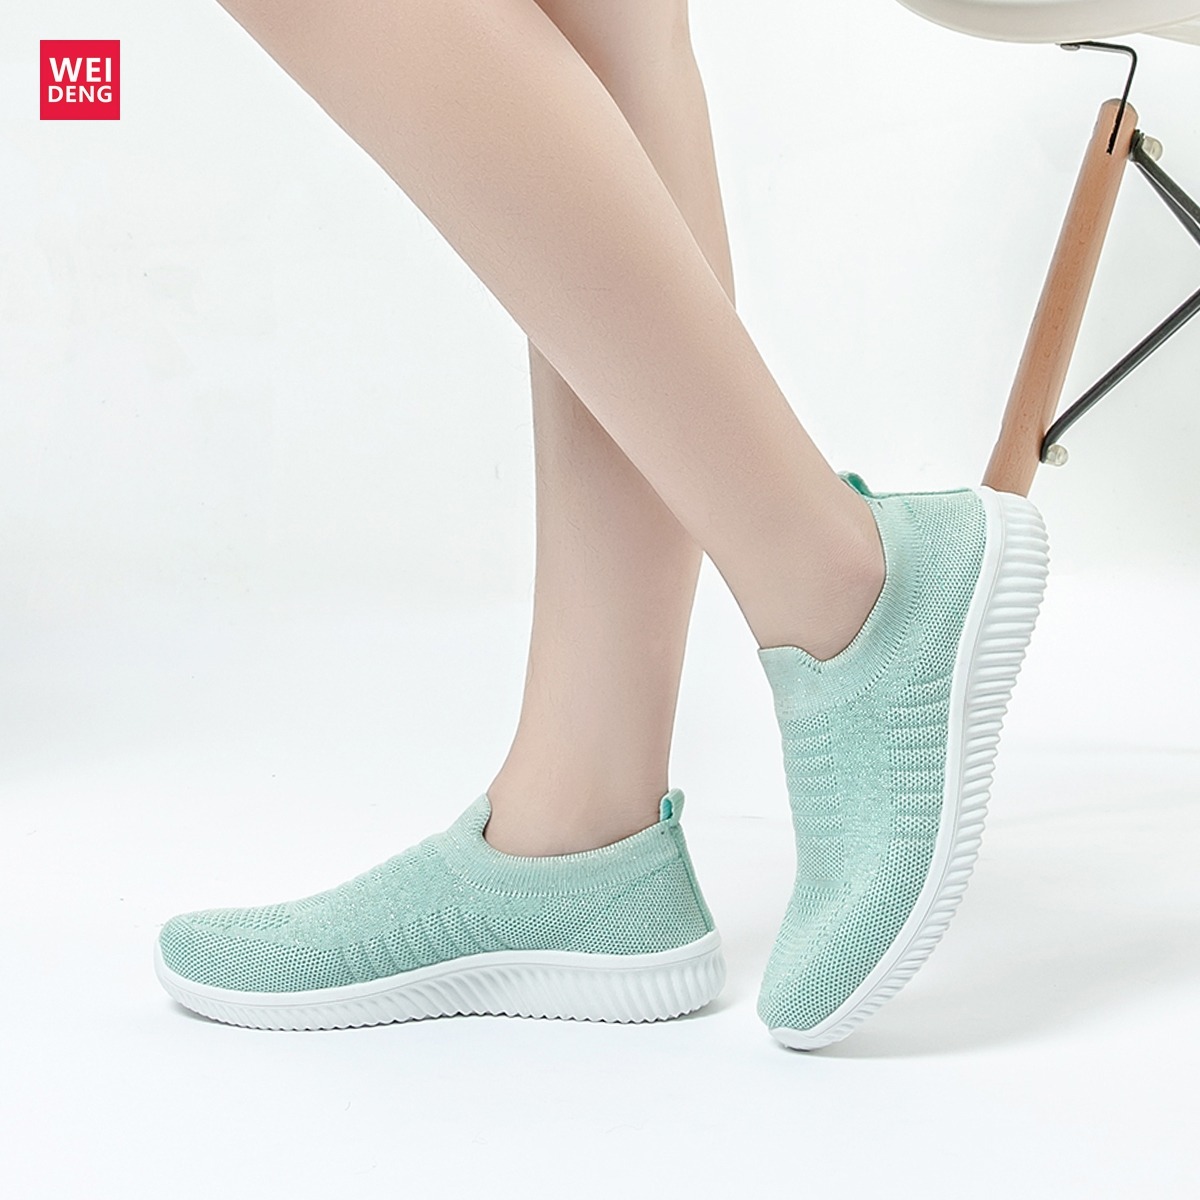 Weideng Knit Sock Shoe Air Mesh Loafers Ultra Soft Slip on Women Flat Fly Prime Knitted Breathable Tenis Unisex Fashion Footwear(China)